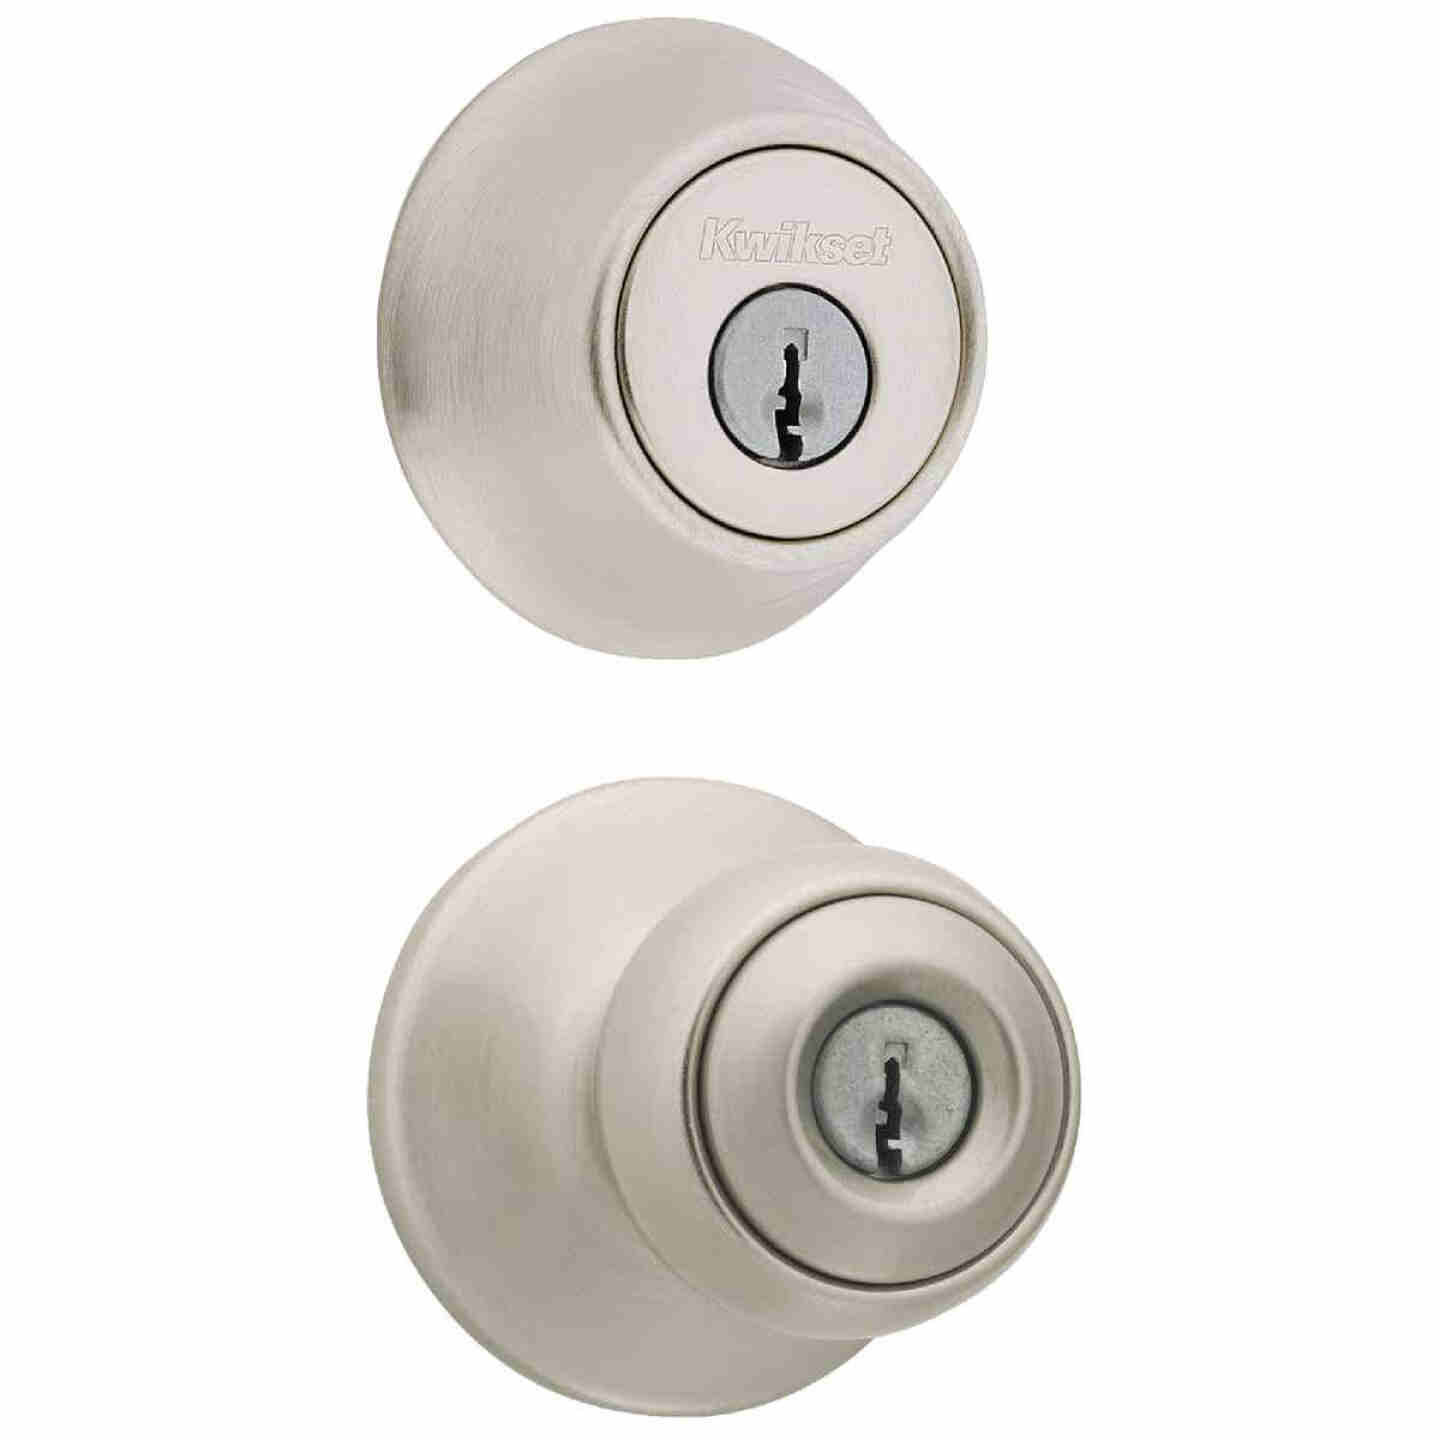 Kwikset Polo Satin Nickel Deadbolt and Door Knob Combo Image 1